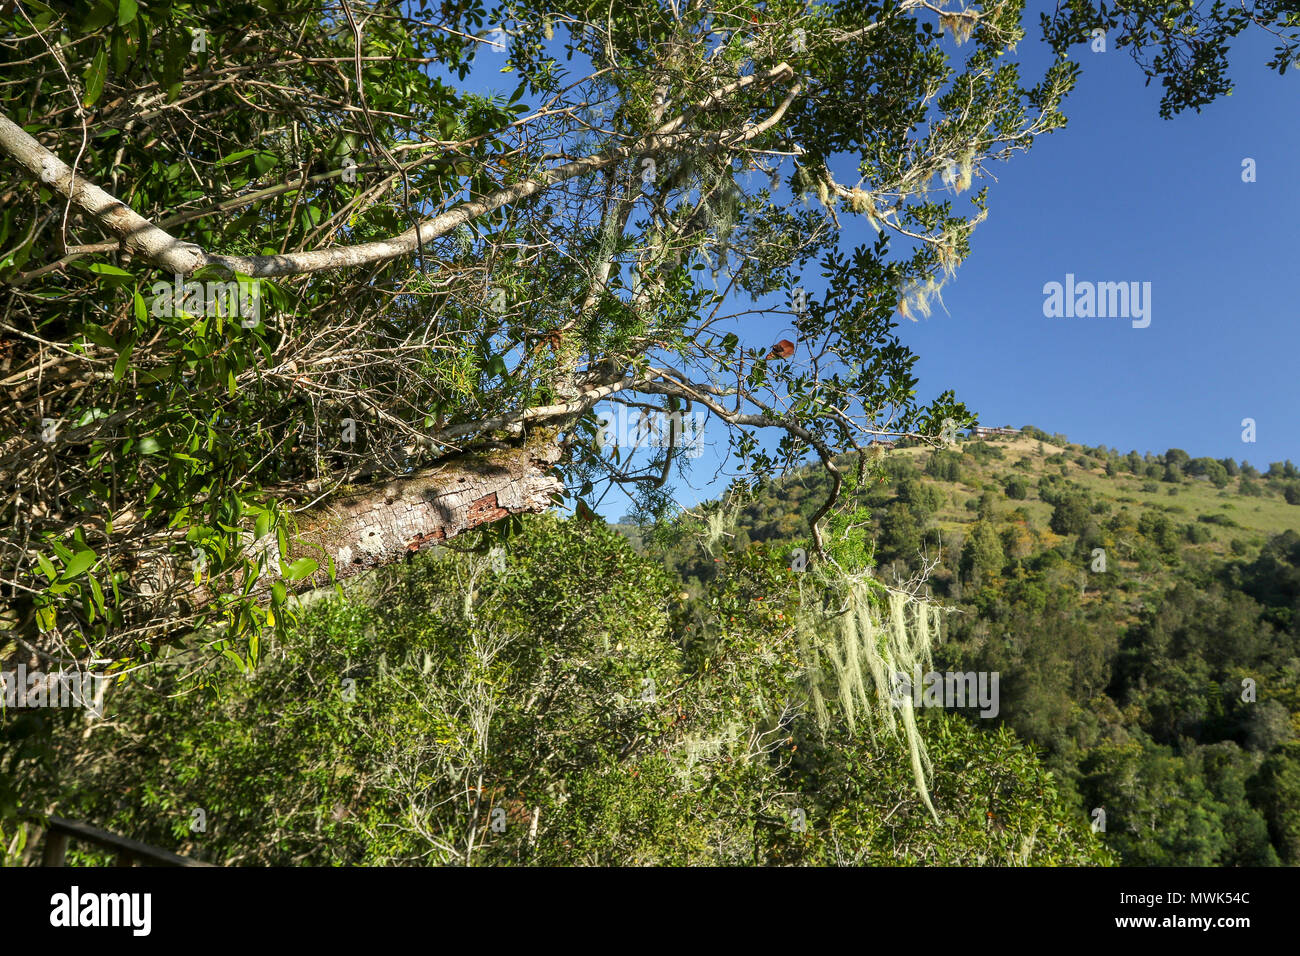 Blue sky landscape with moss hanging from tree along the half collared kingfisher trail in the wilderness nature reserve, south africa - Stock Image